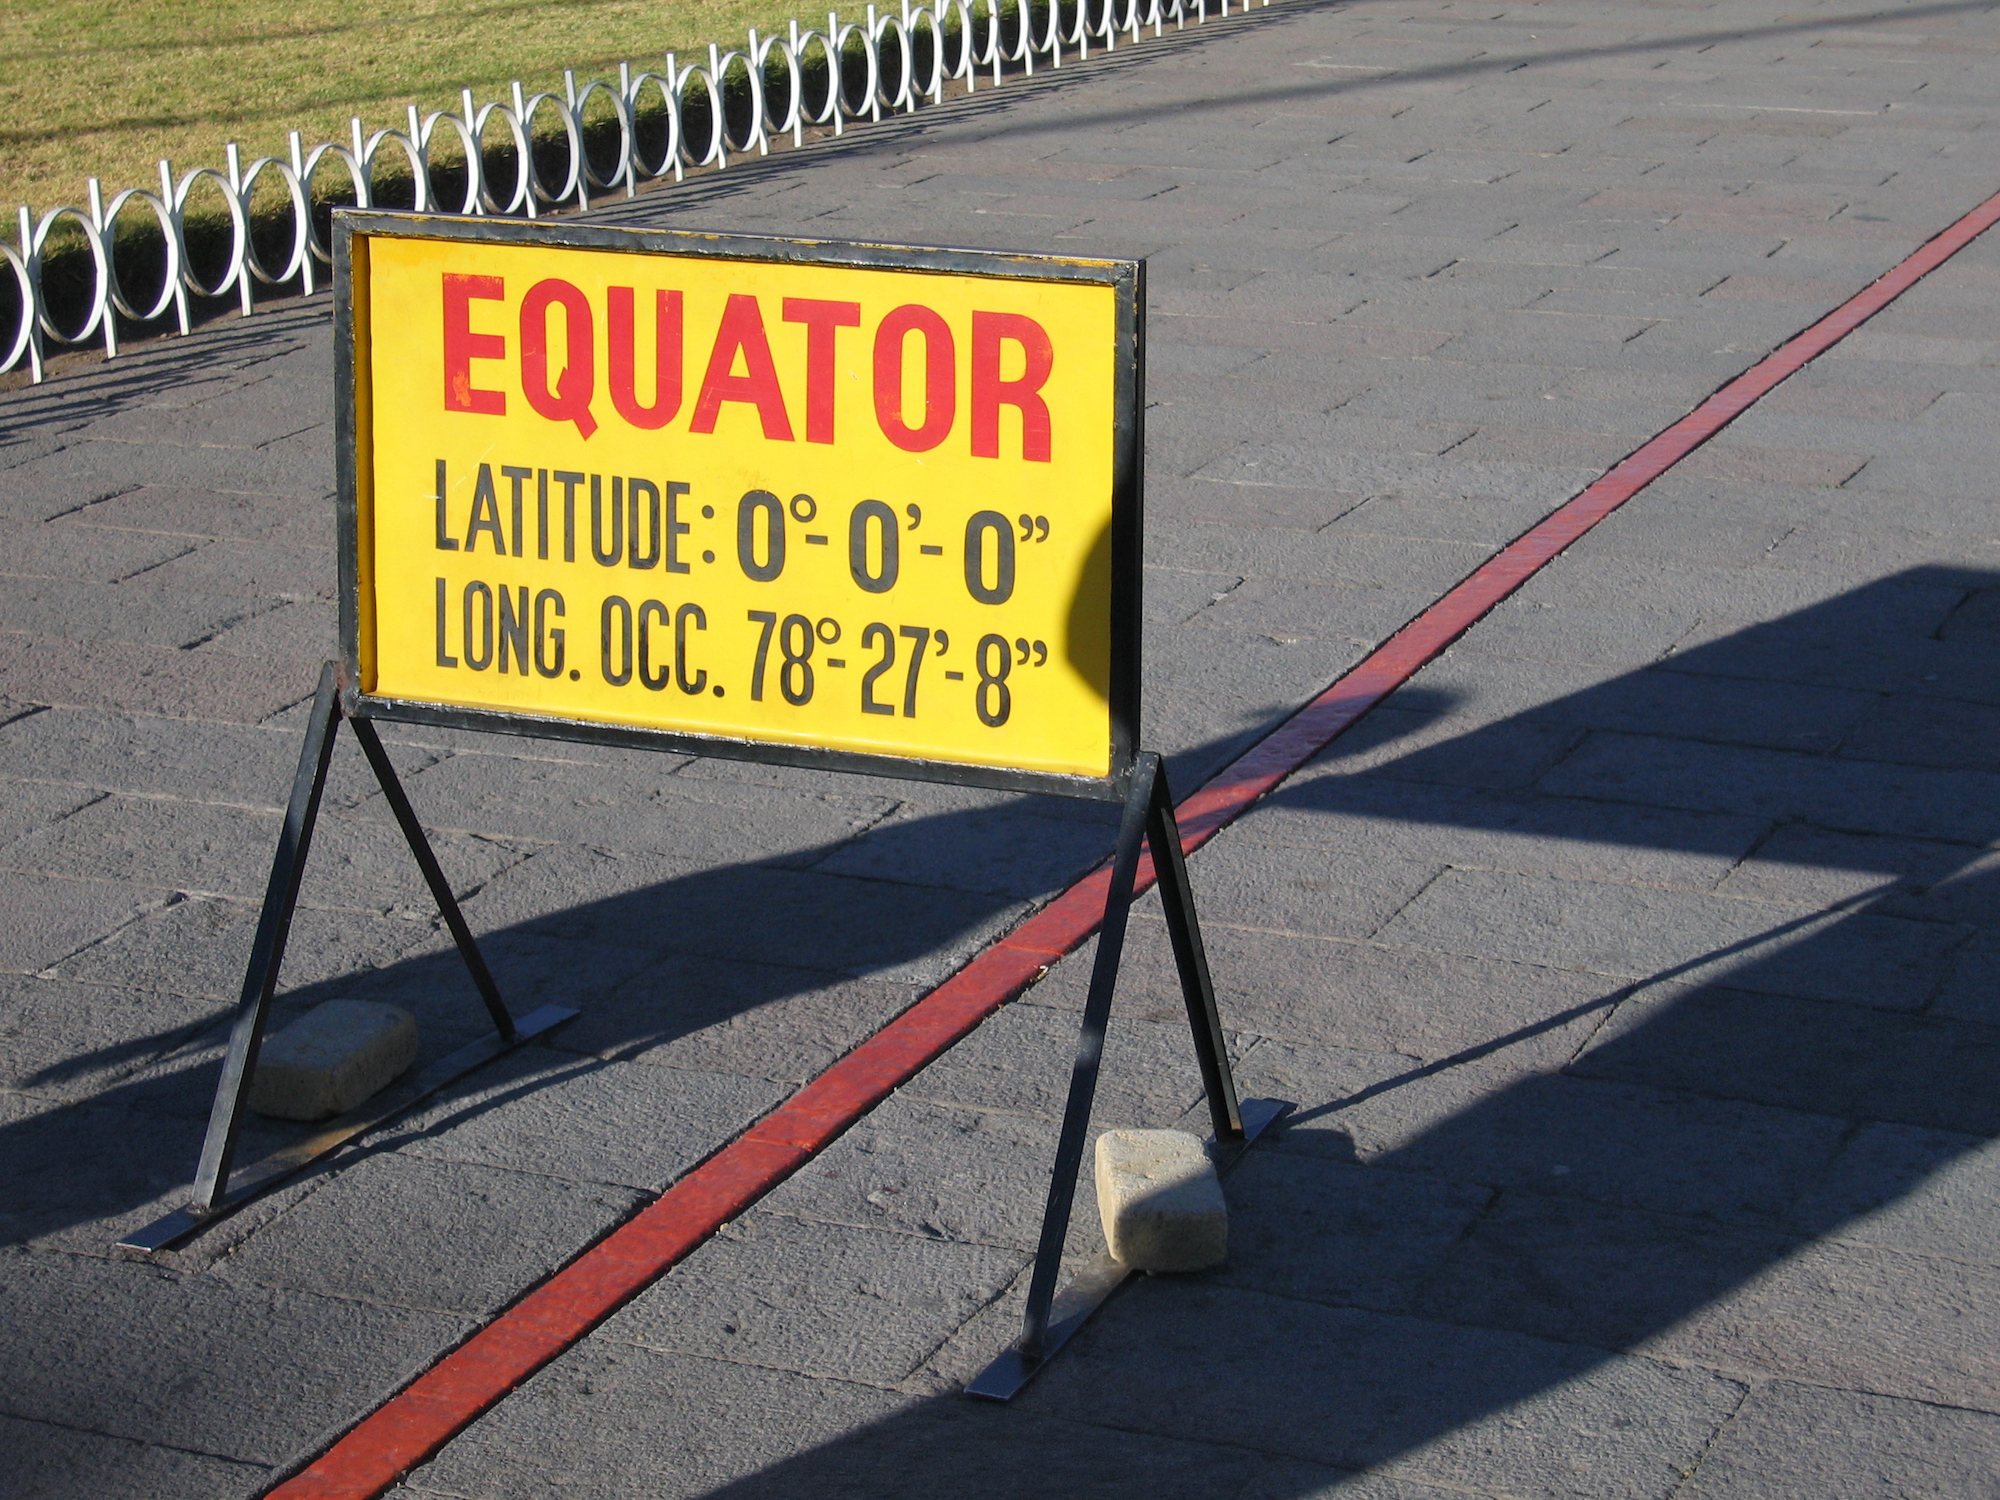 The Equator. Photo: Jennifer Stone/Shutterstock